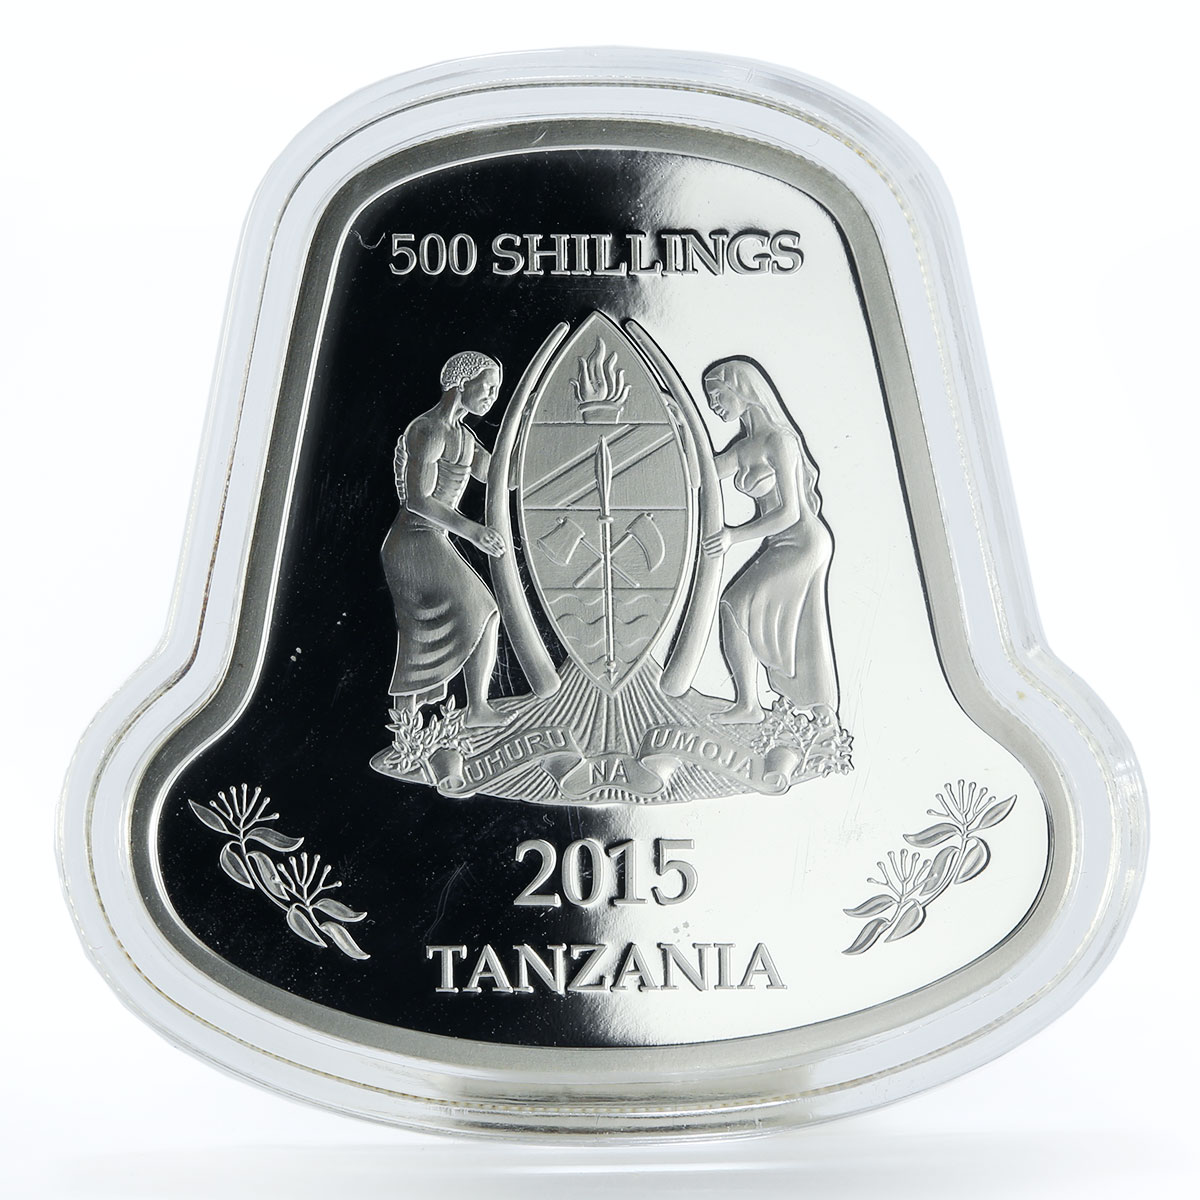 Tanzania 500 shillings Year of the Goat hologram silver coin 2015